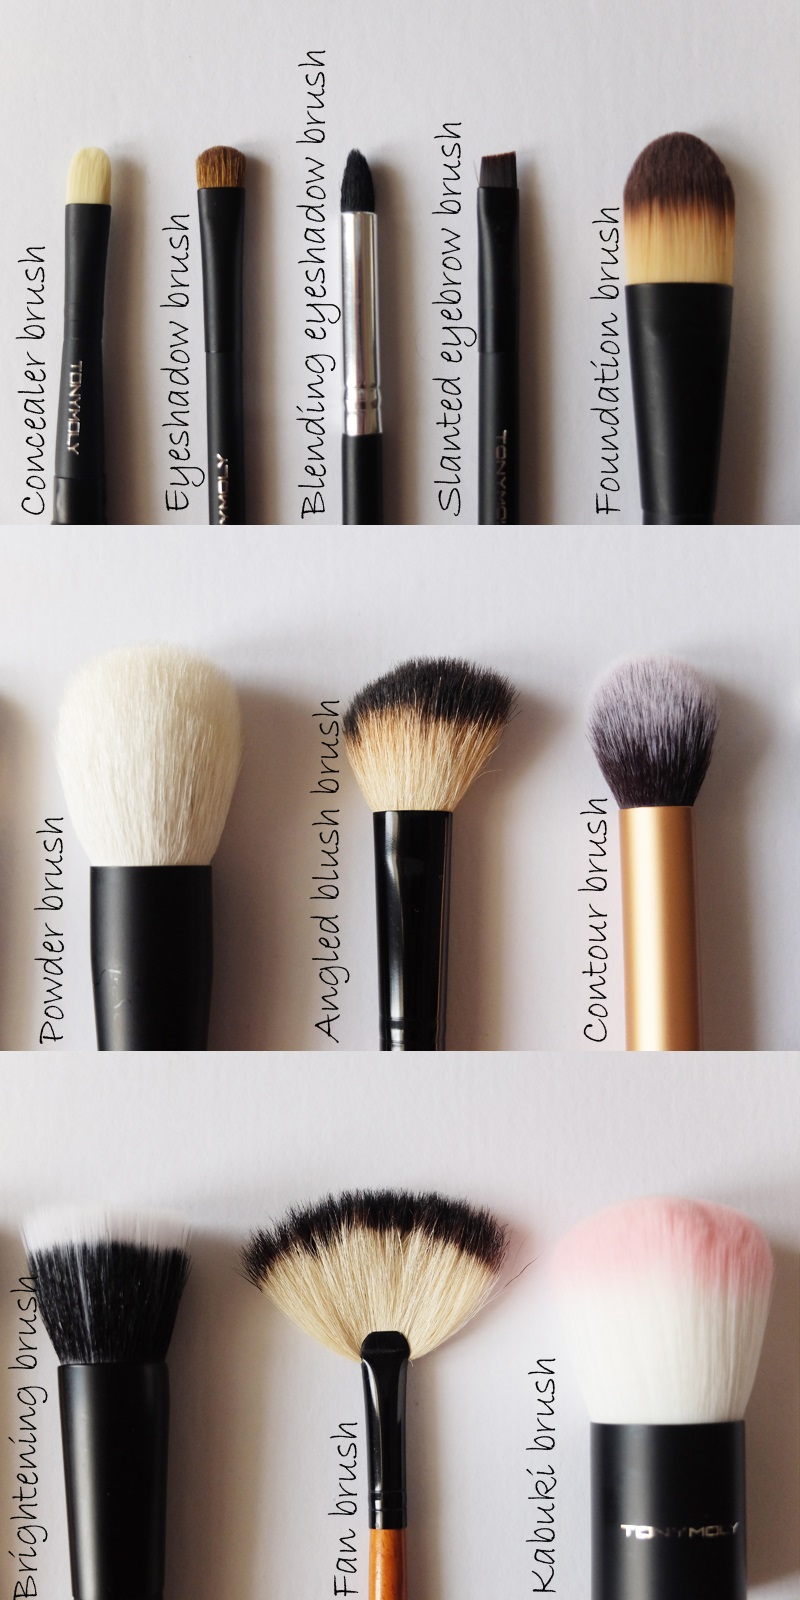 Makeup Brushes And What They Are Used For: List Of All Makeup Brushes And Their Uses